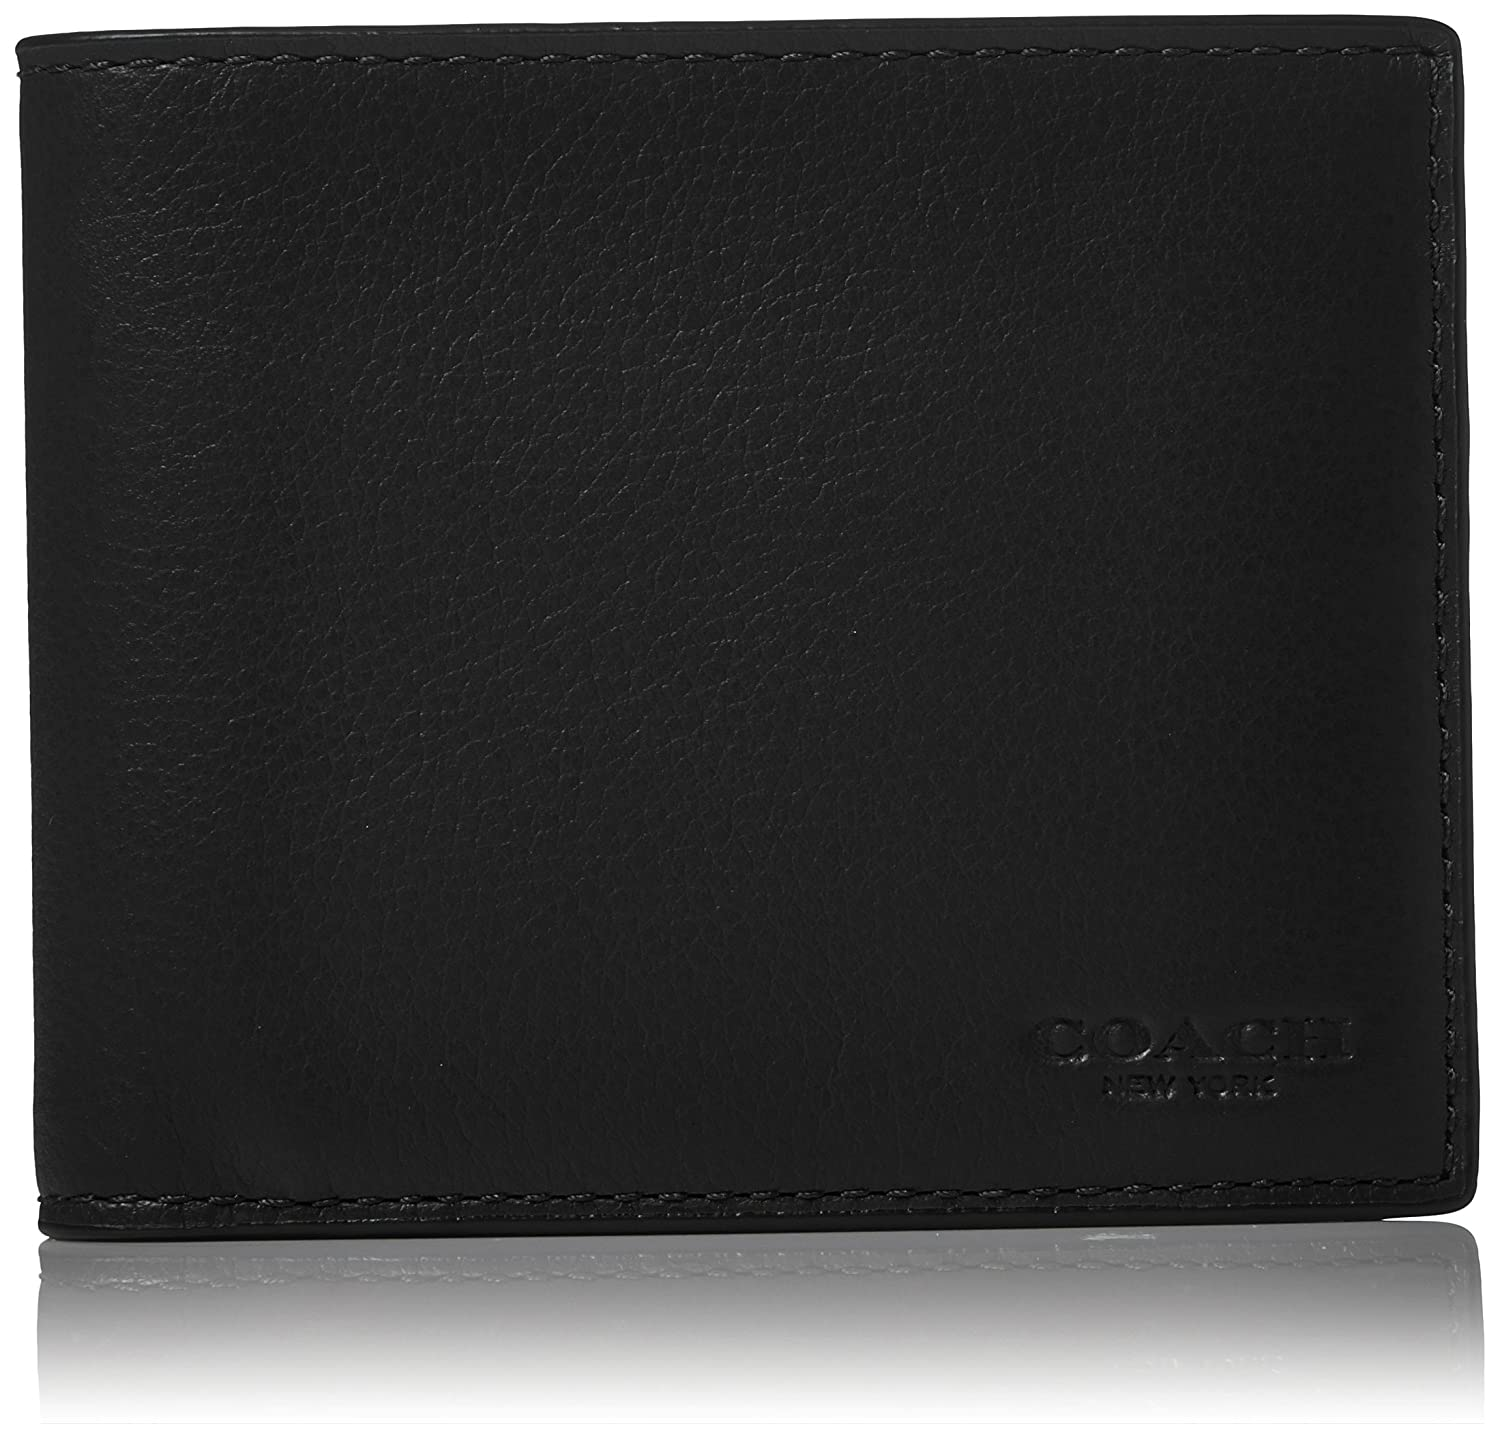 dad3fa10bff9 Coach mens leather in wallet set black one size shoes jpg 1500x1438 Coach  mens wallet